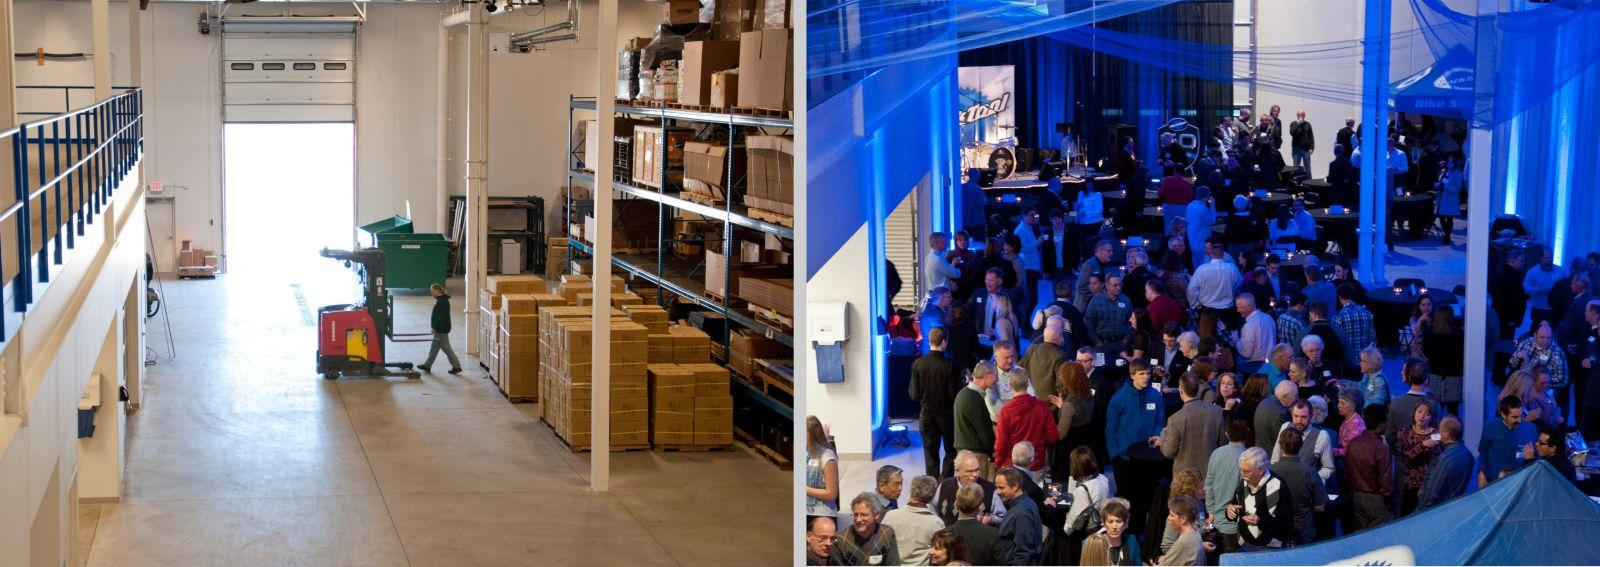 Left: Empty Park Tool Warehouse Right: Same spot in warehouse but full of people at a party